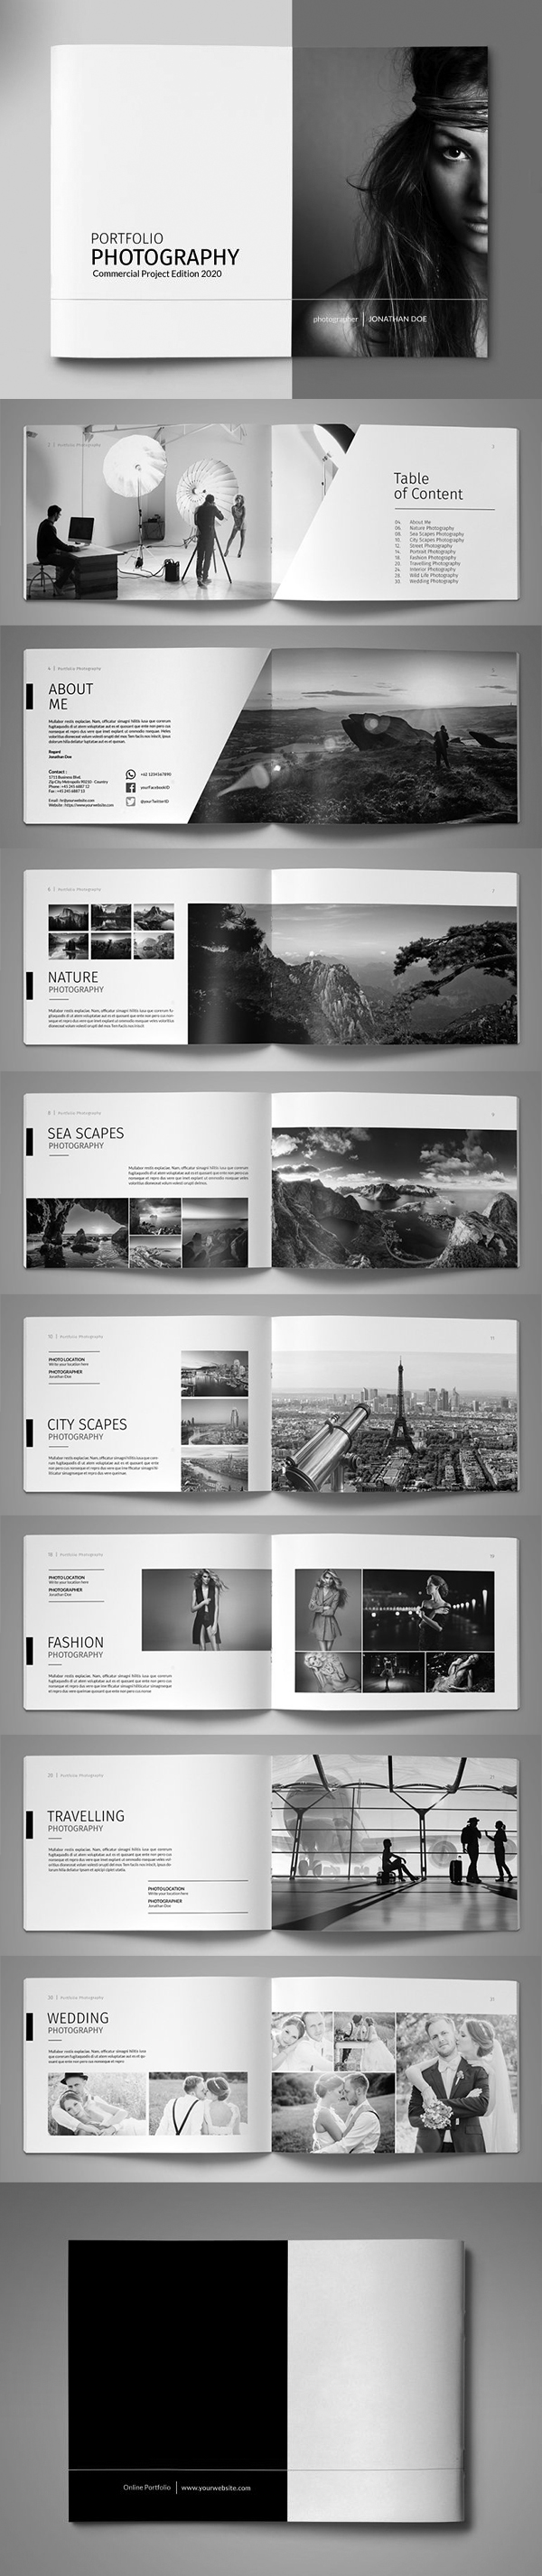 A5 photography portfolio brochure template